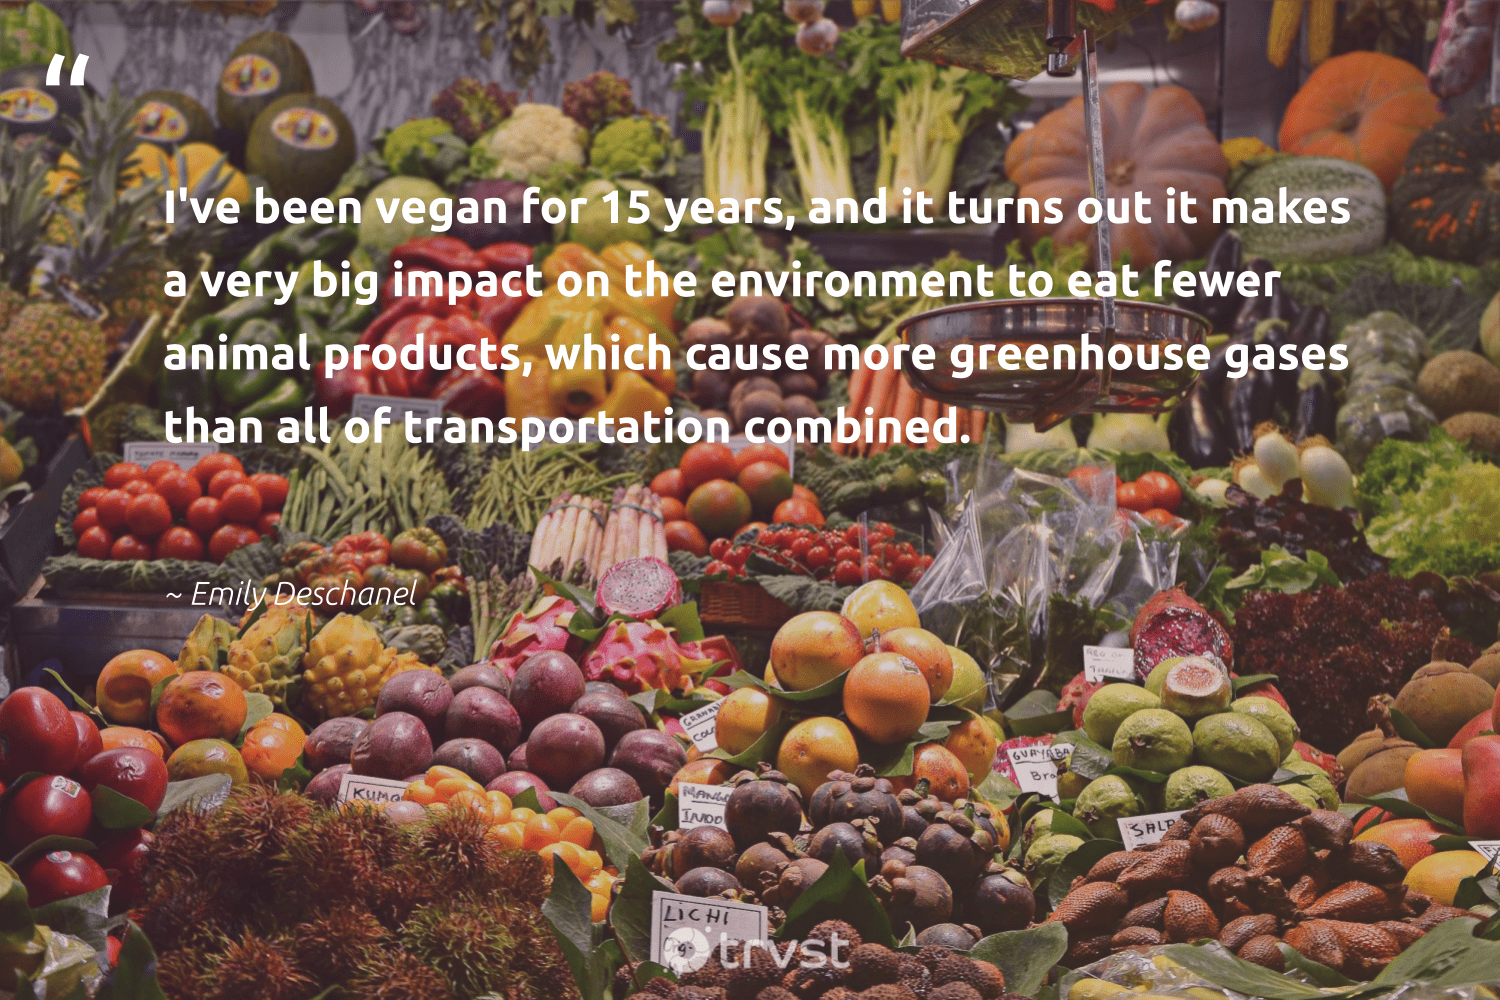 """I've been vegan for 15 years, and it turns out it makes a very big impact on the environment to eat fewer animal products, which cause more greenhouse gases than all of transportation combined.""  - Emily Deschanel #trvst #quotes #impact #environment #animal #cause #vegan #earth #sustainable #naturelovers #socialchange #mothernature"